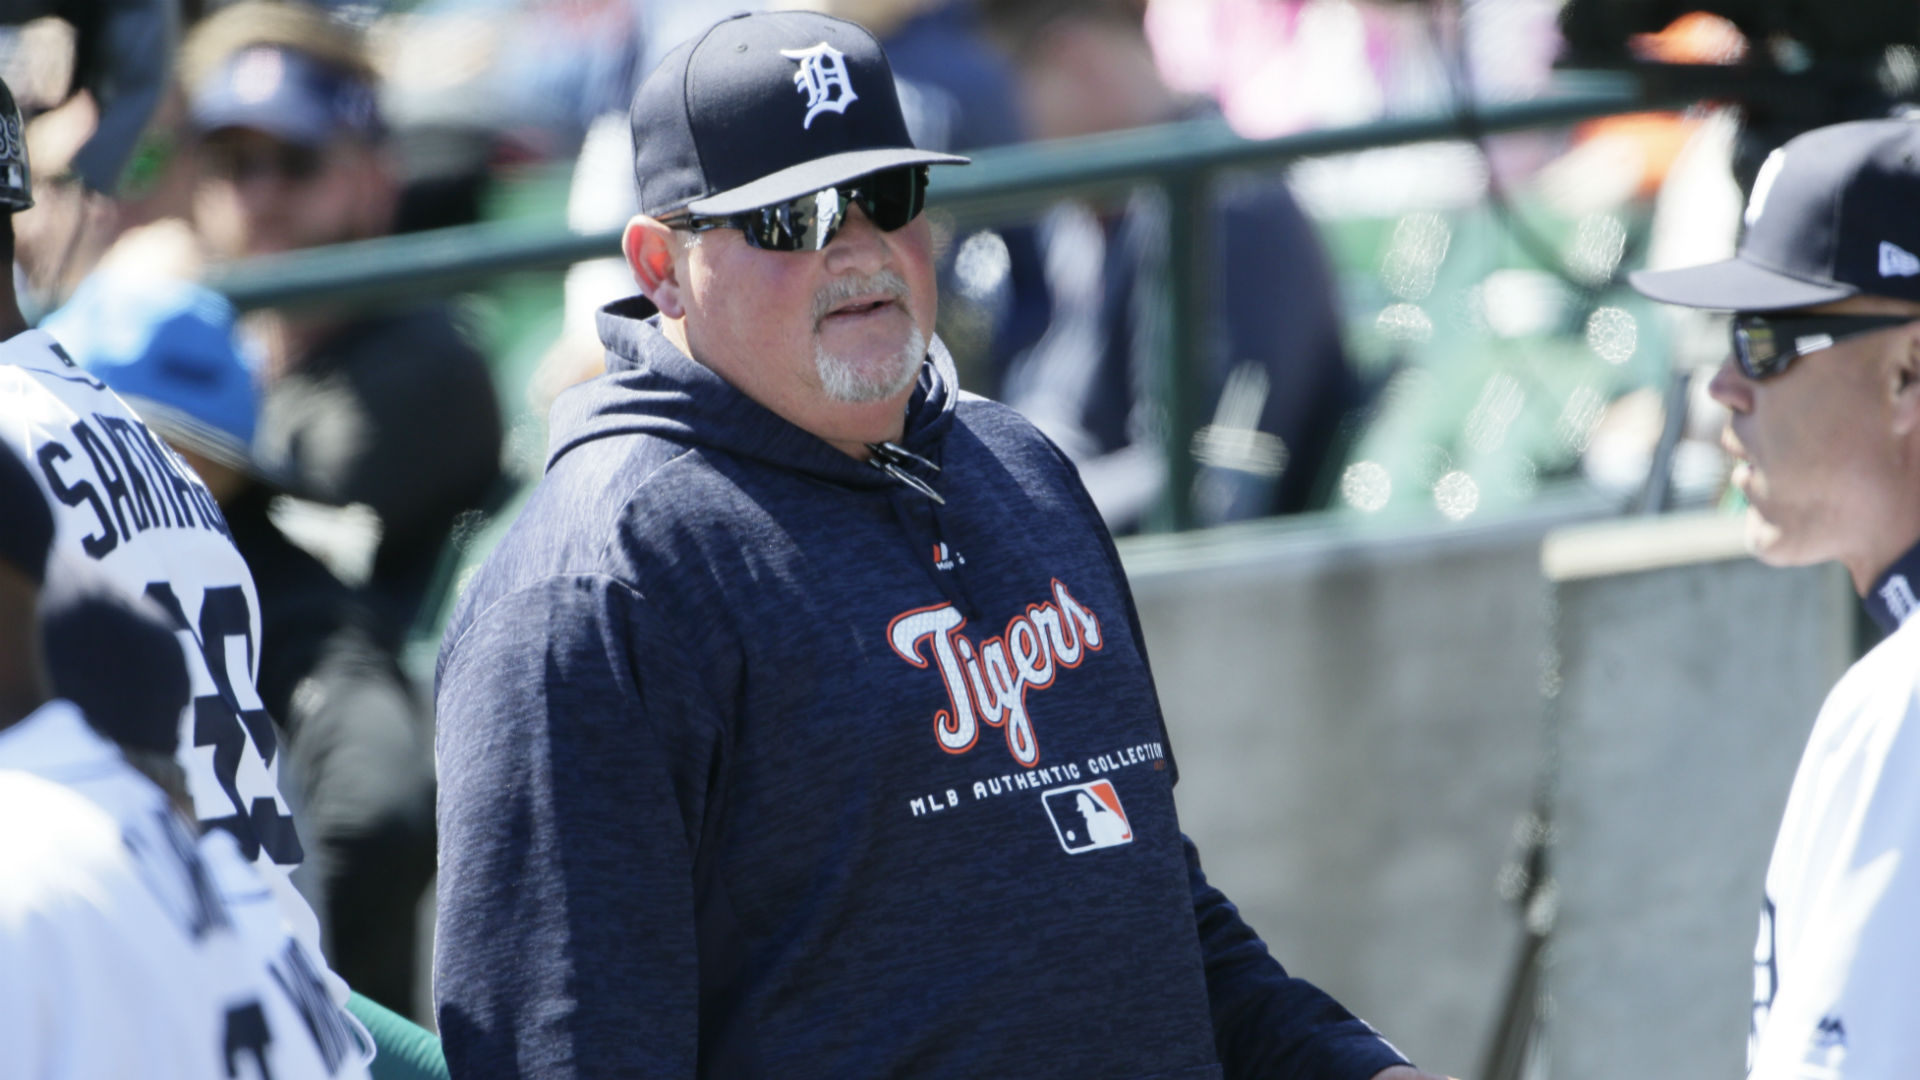 Detroit Tigers fire pitching coach Chris Bosio over 'insensitive comments'